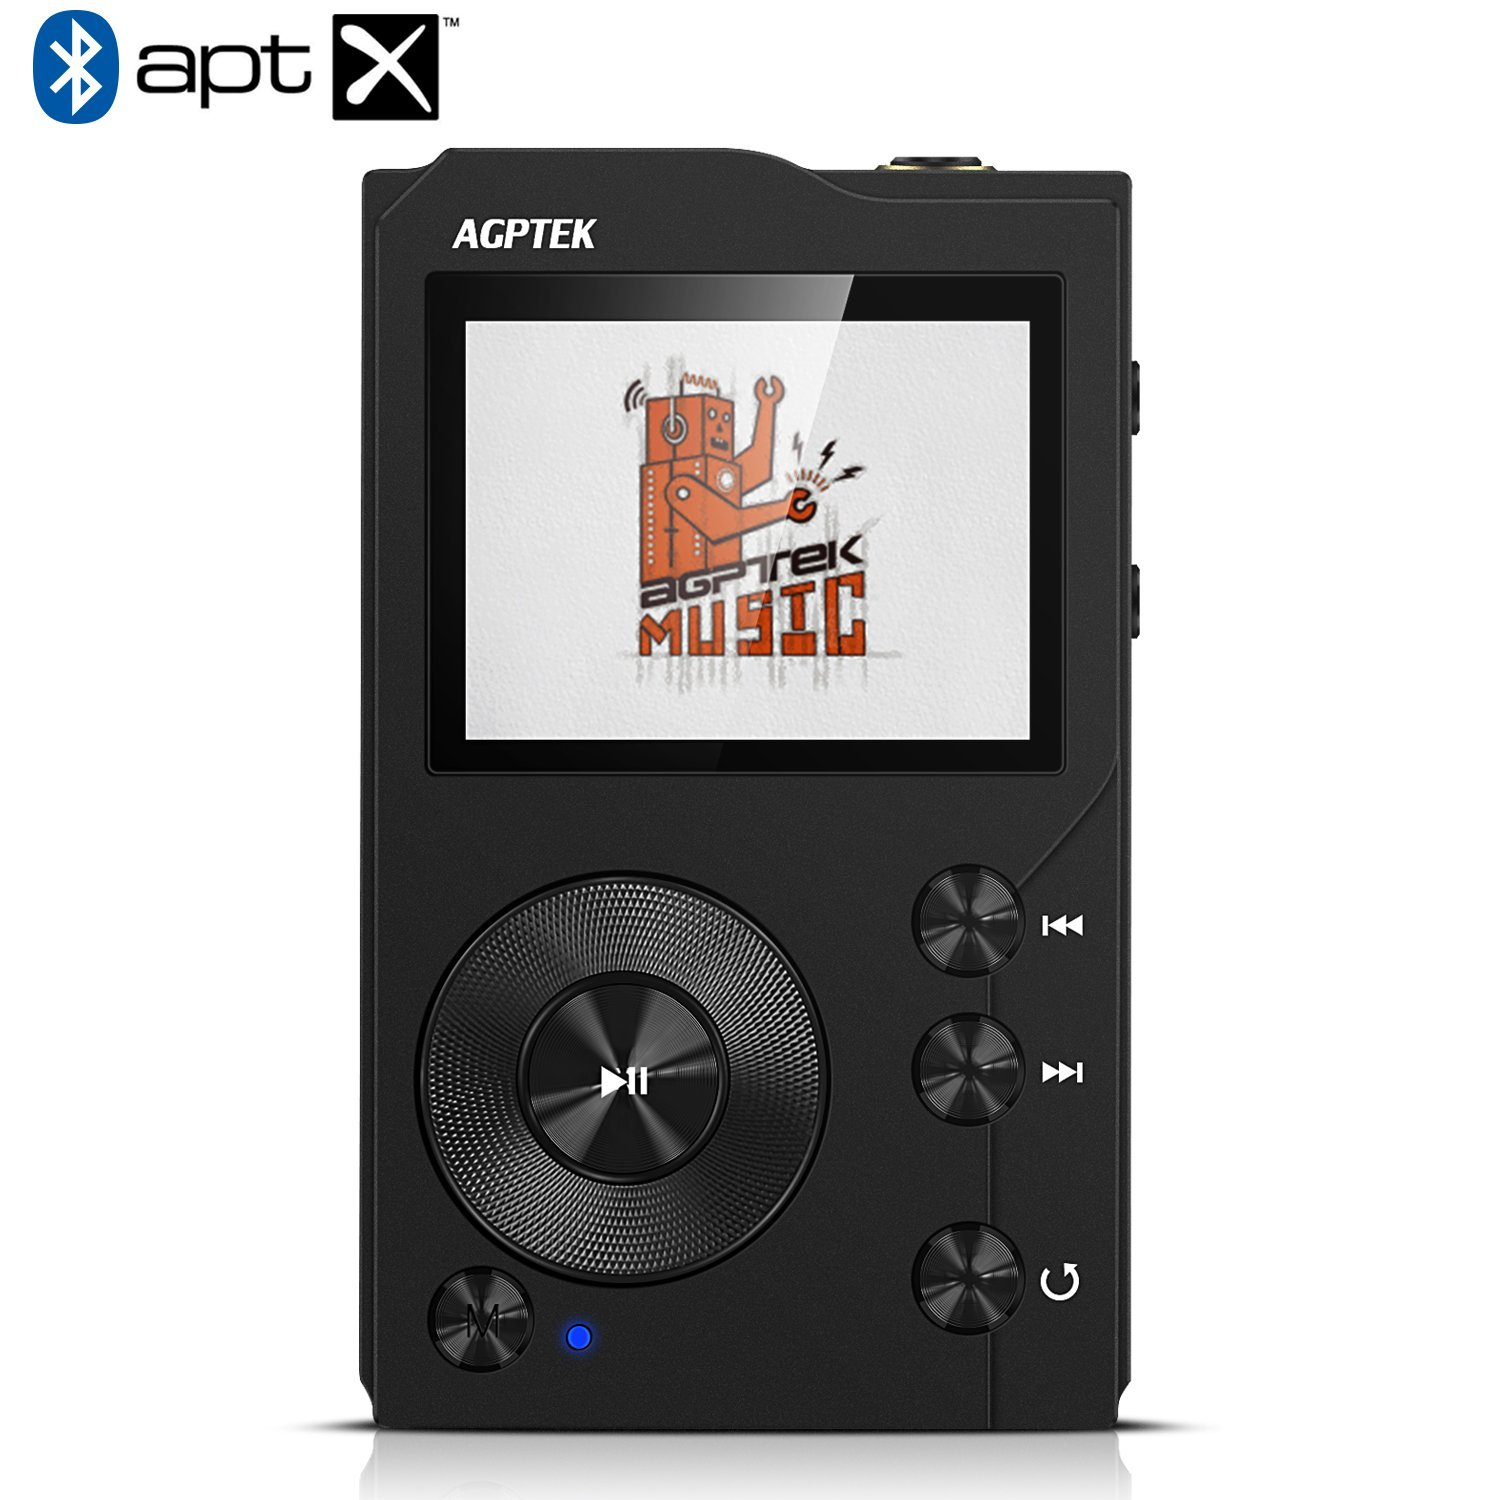 AGPTEK H3 HIFI Bluetooth MP3 Player High Resolution Lossless Digital Audio Player with 32GB Memory Card, Support Up to 256GB, Black